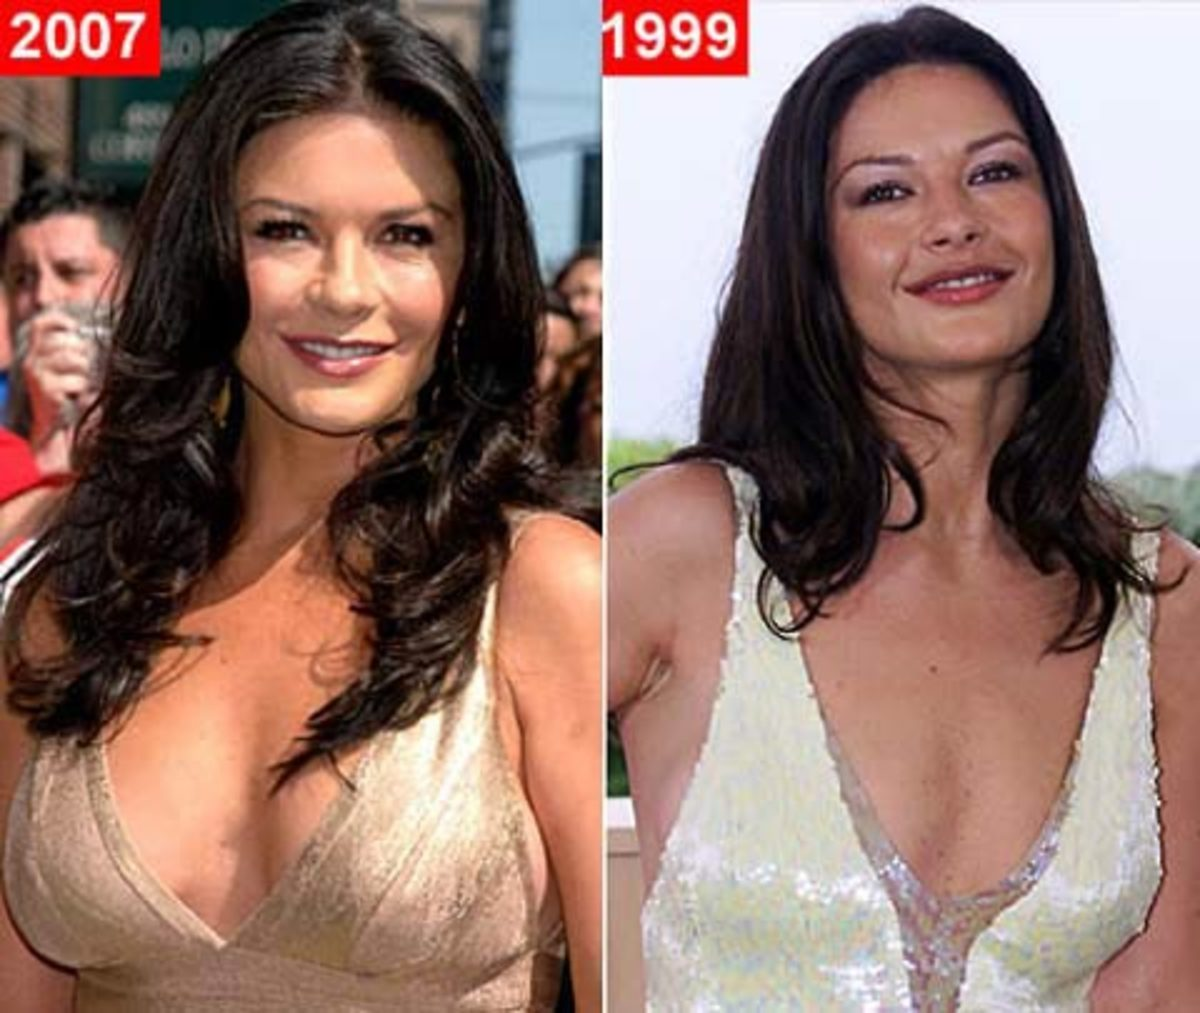 Catherine Zeta Jones Boob Job